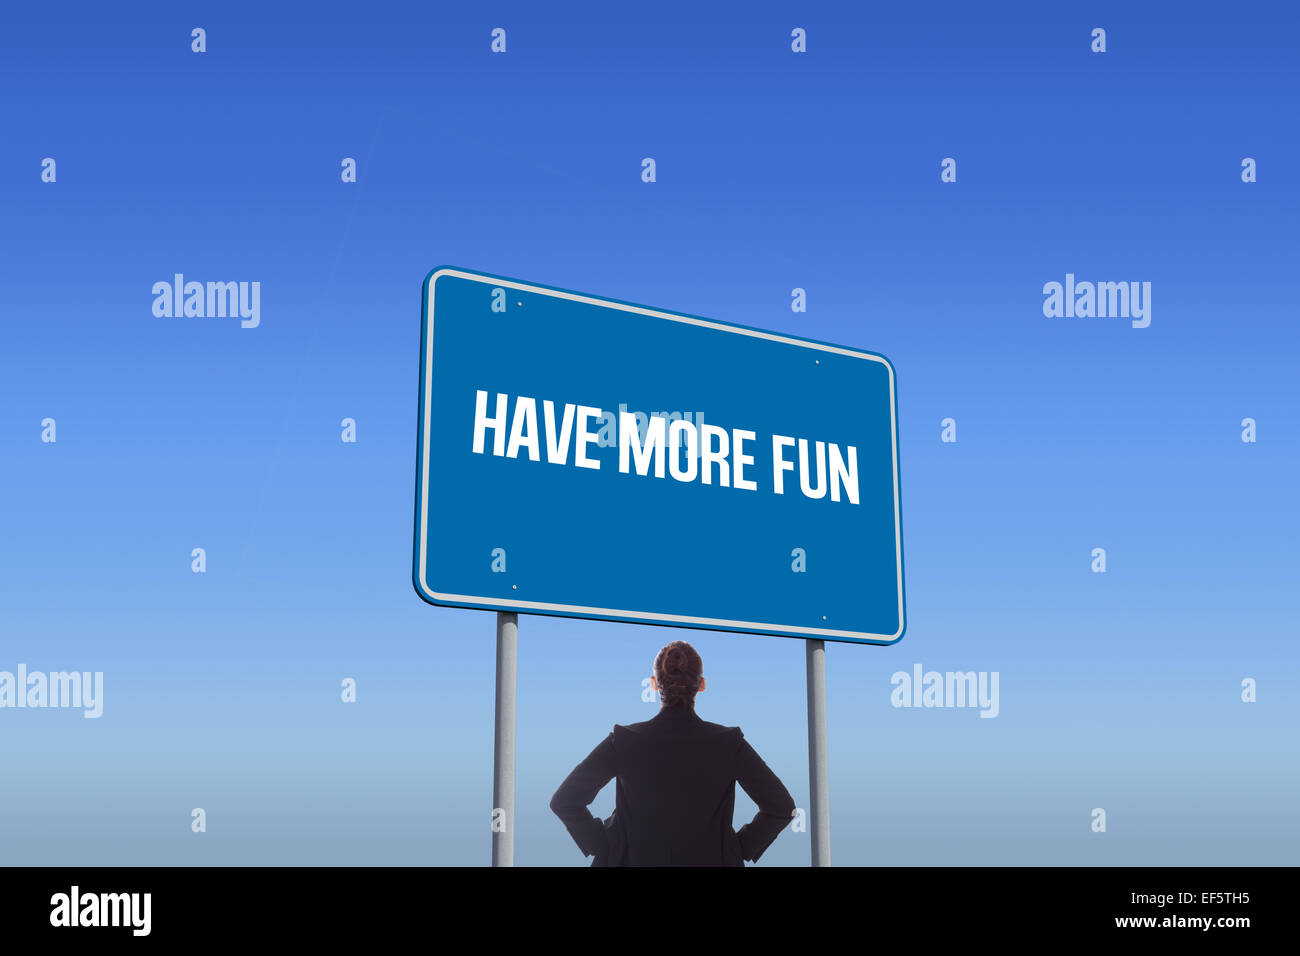 Have more fun against bright blue sky - Stock Image